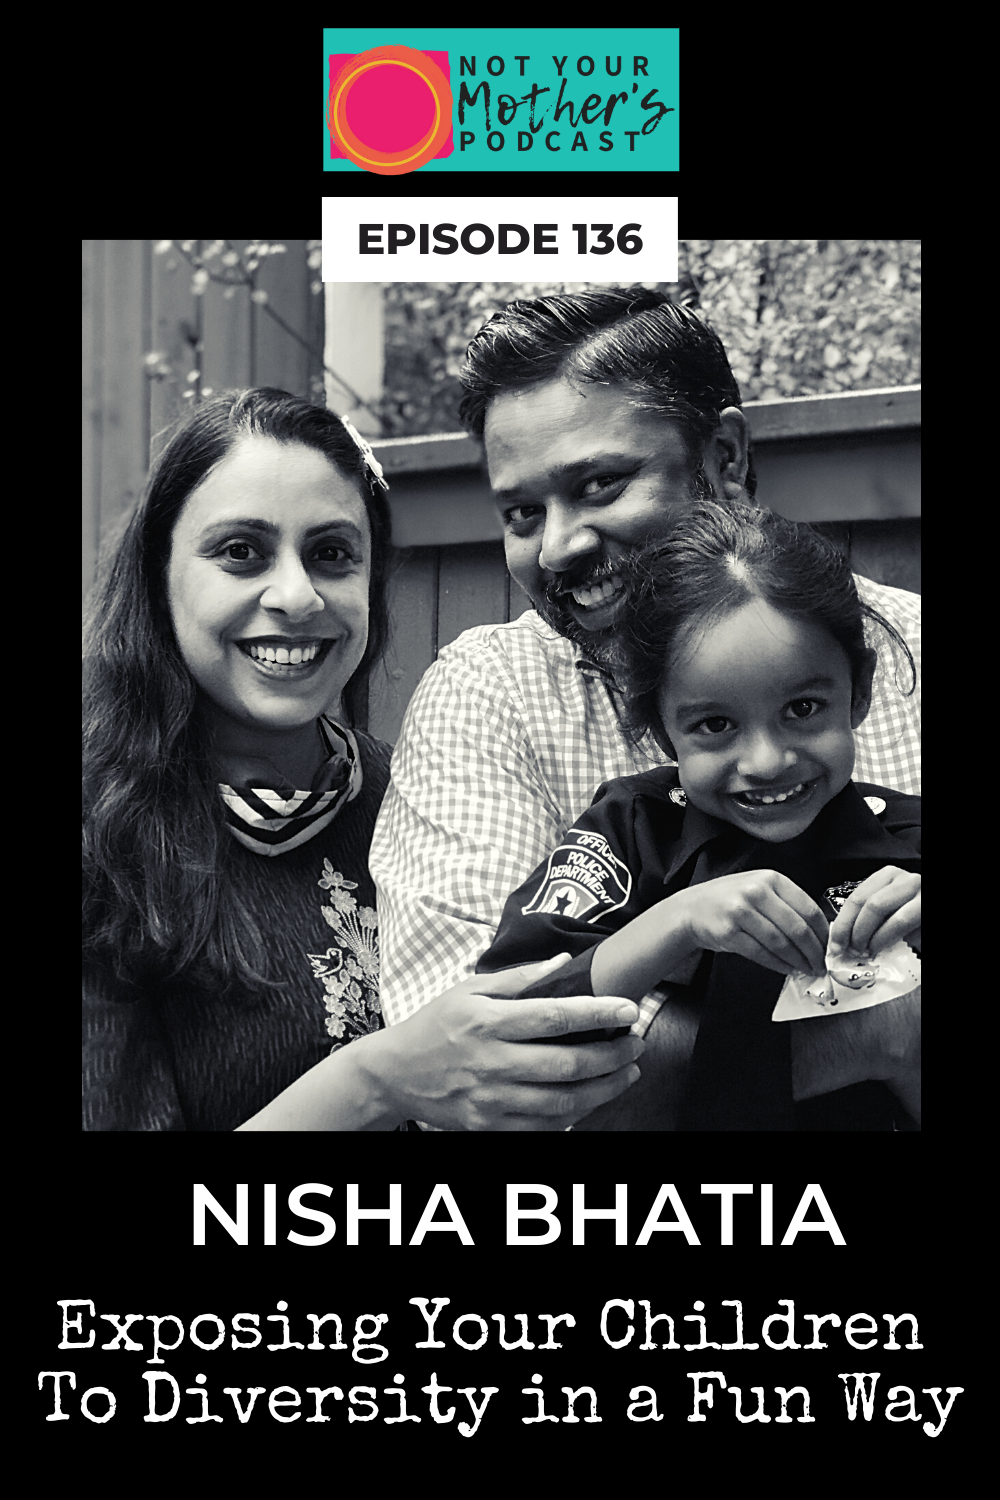 Exposing Your Children To Diversity in a Fun Way with Nisha Bhatia PIN